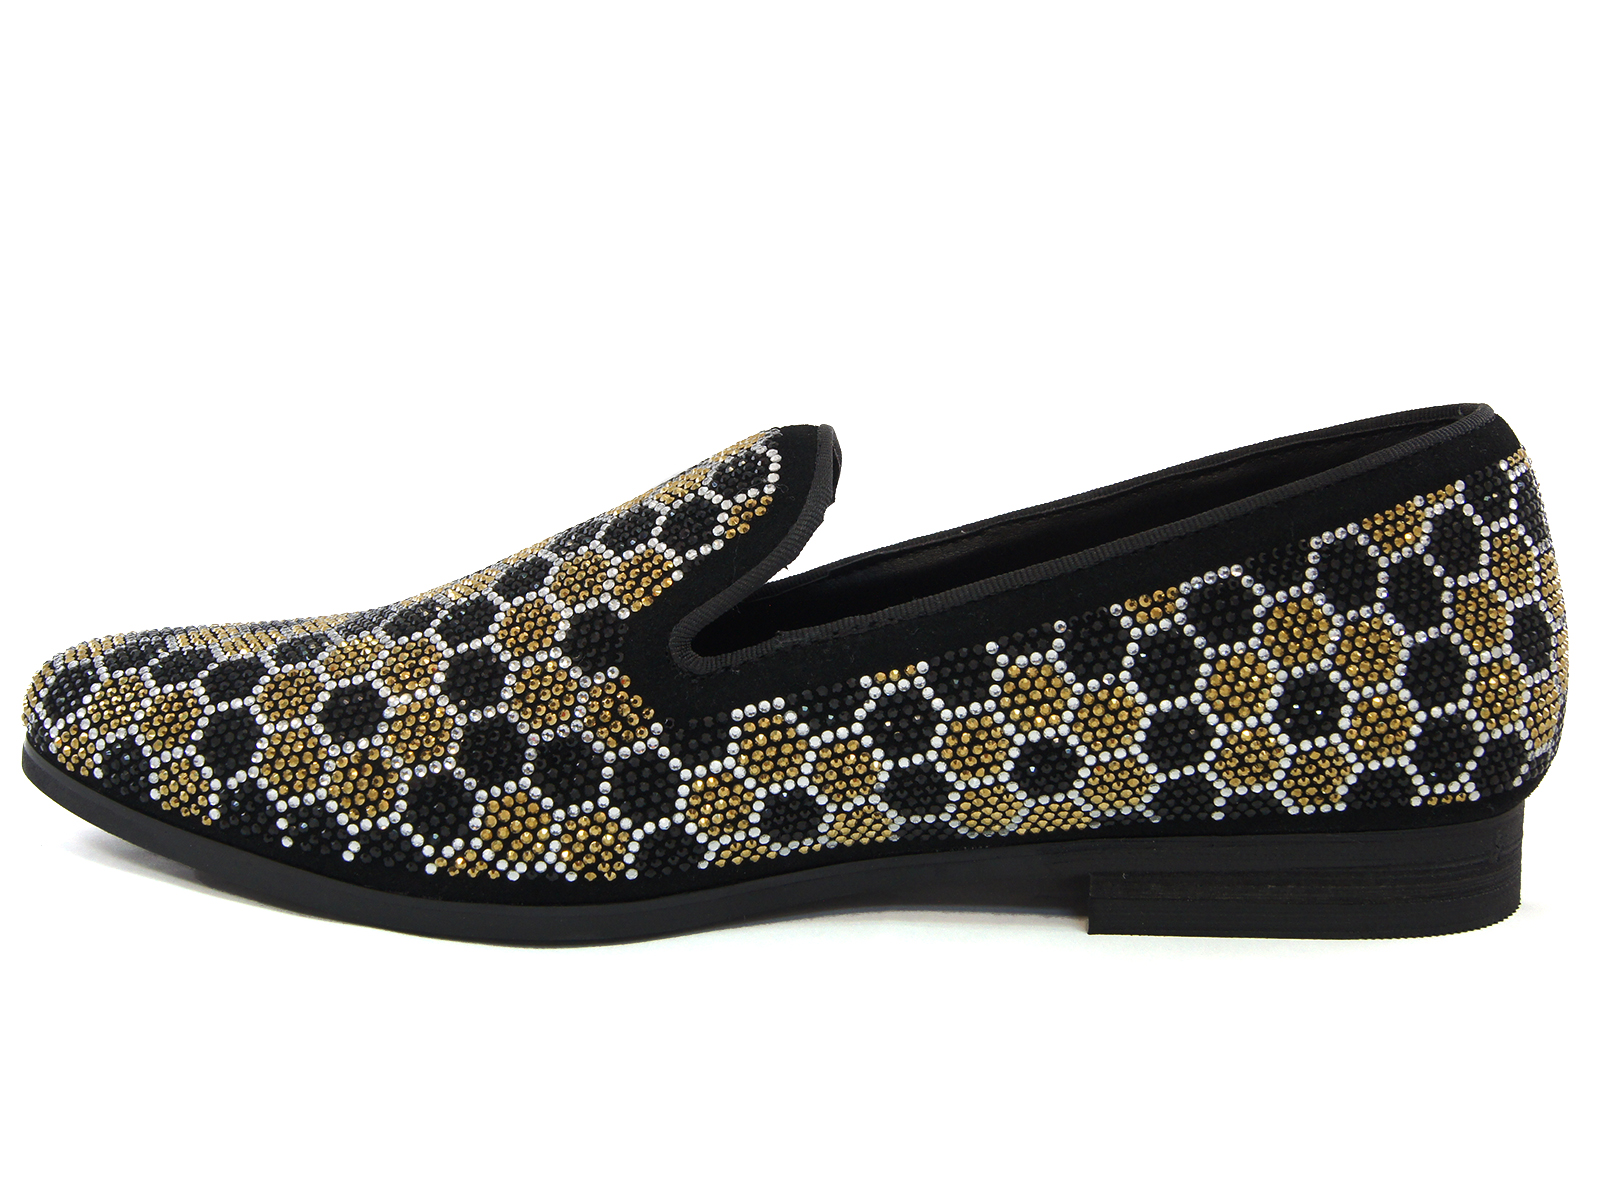 d8151e01e62 Steve Madden Mens Gold Black Honeycomb Rhinestone Pattern Slip On Loafer  Shoe. 100% Satisfaction GuaranteedFree ShippingNo Sales TaxEasy Returns